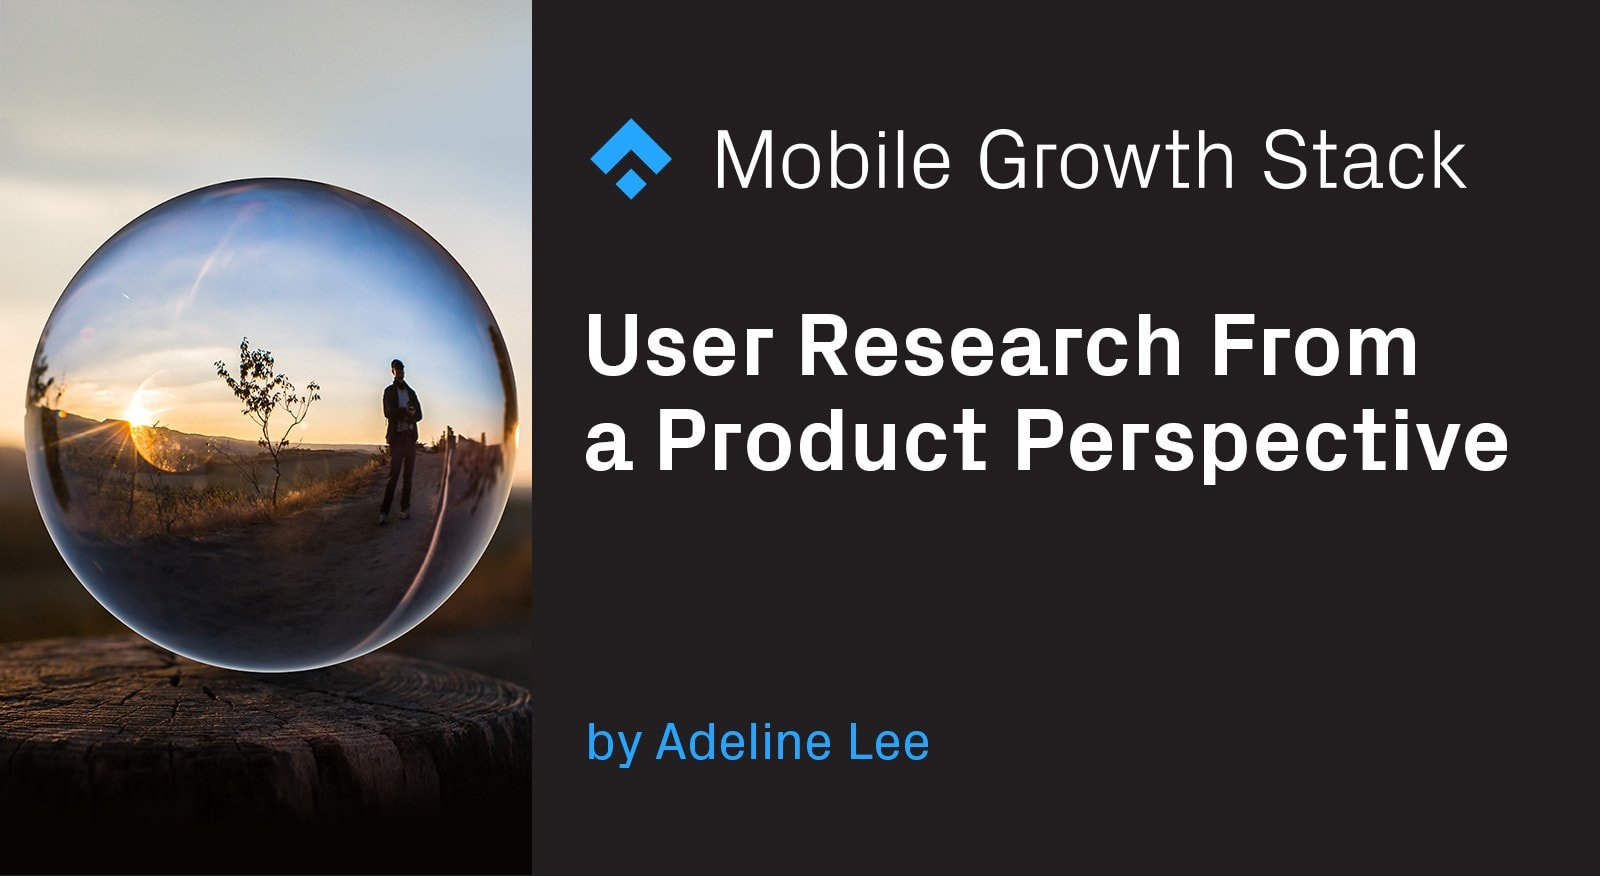 User Research From a Product Perspective